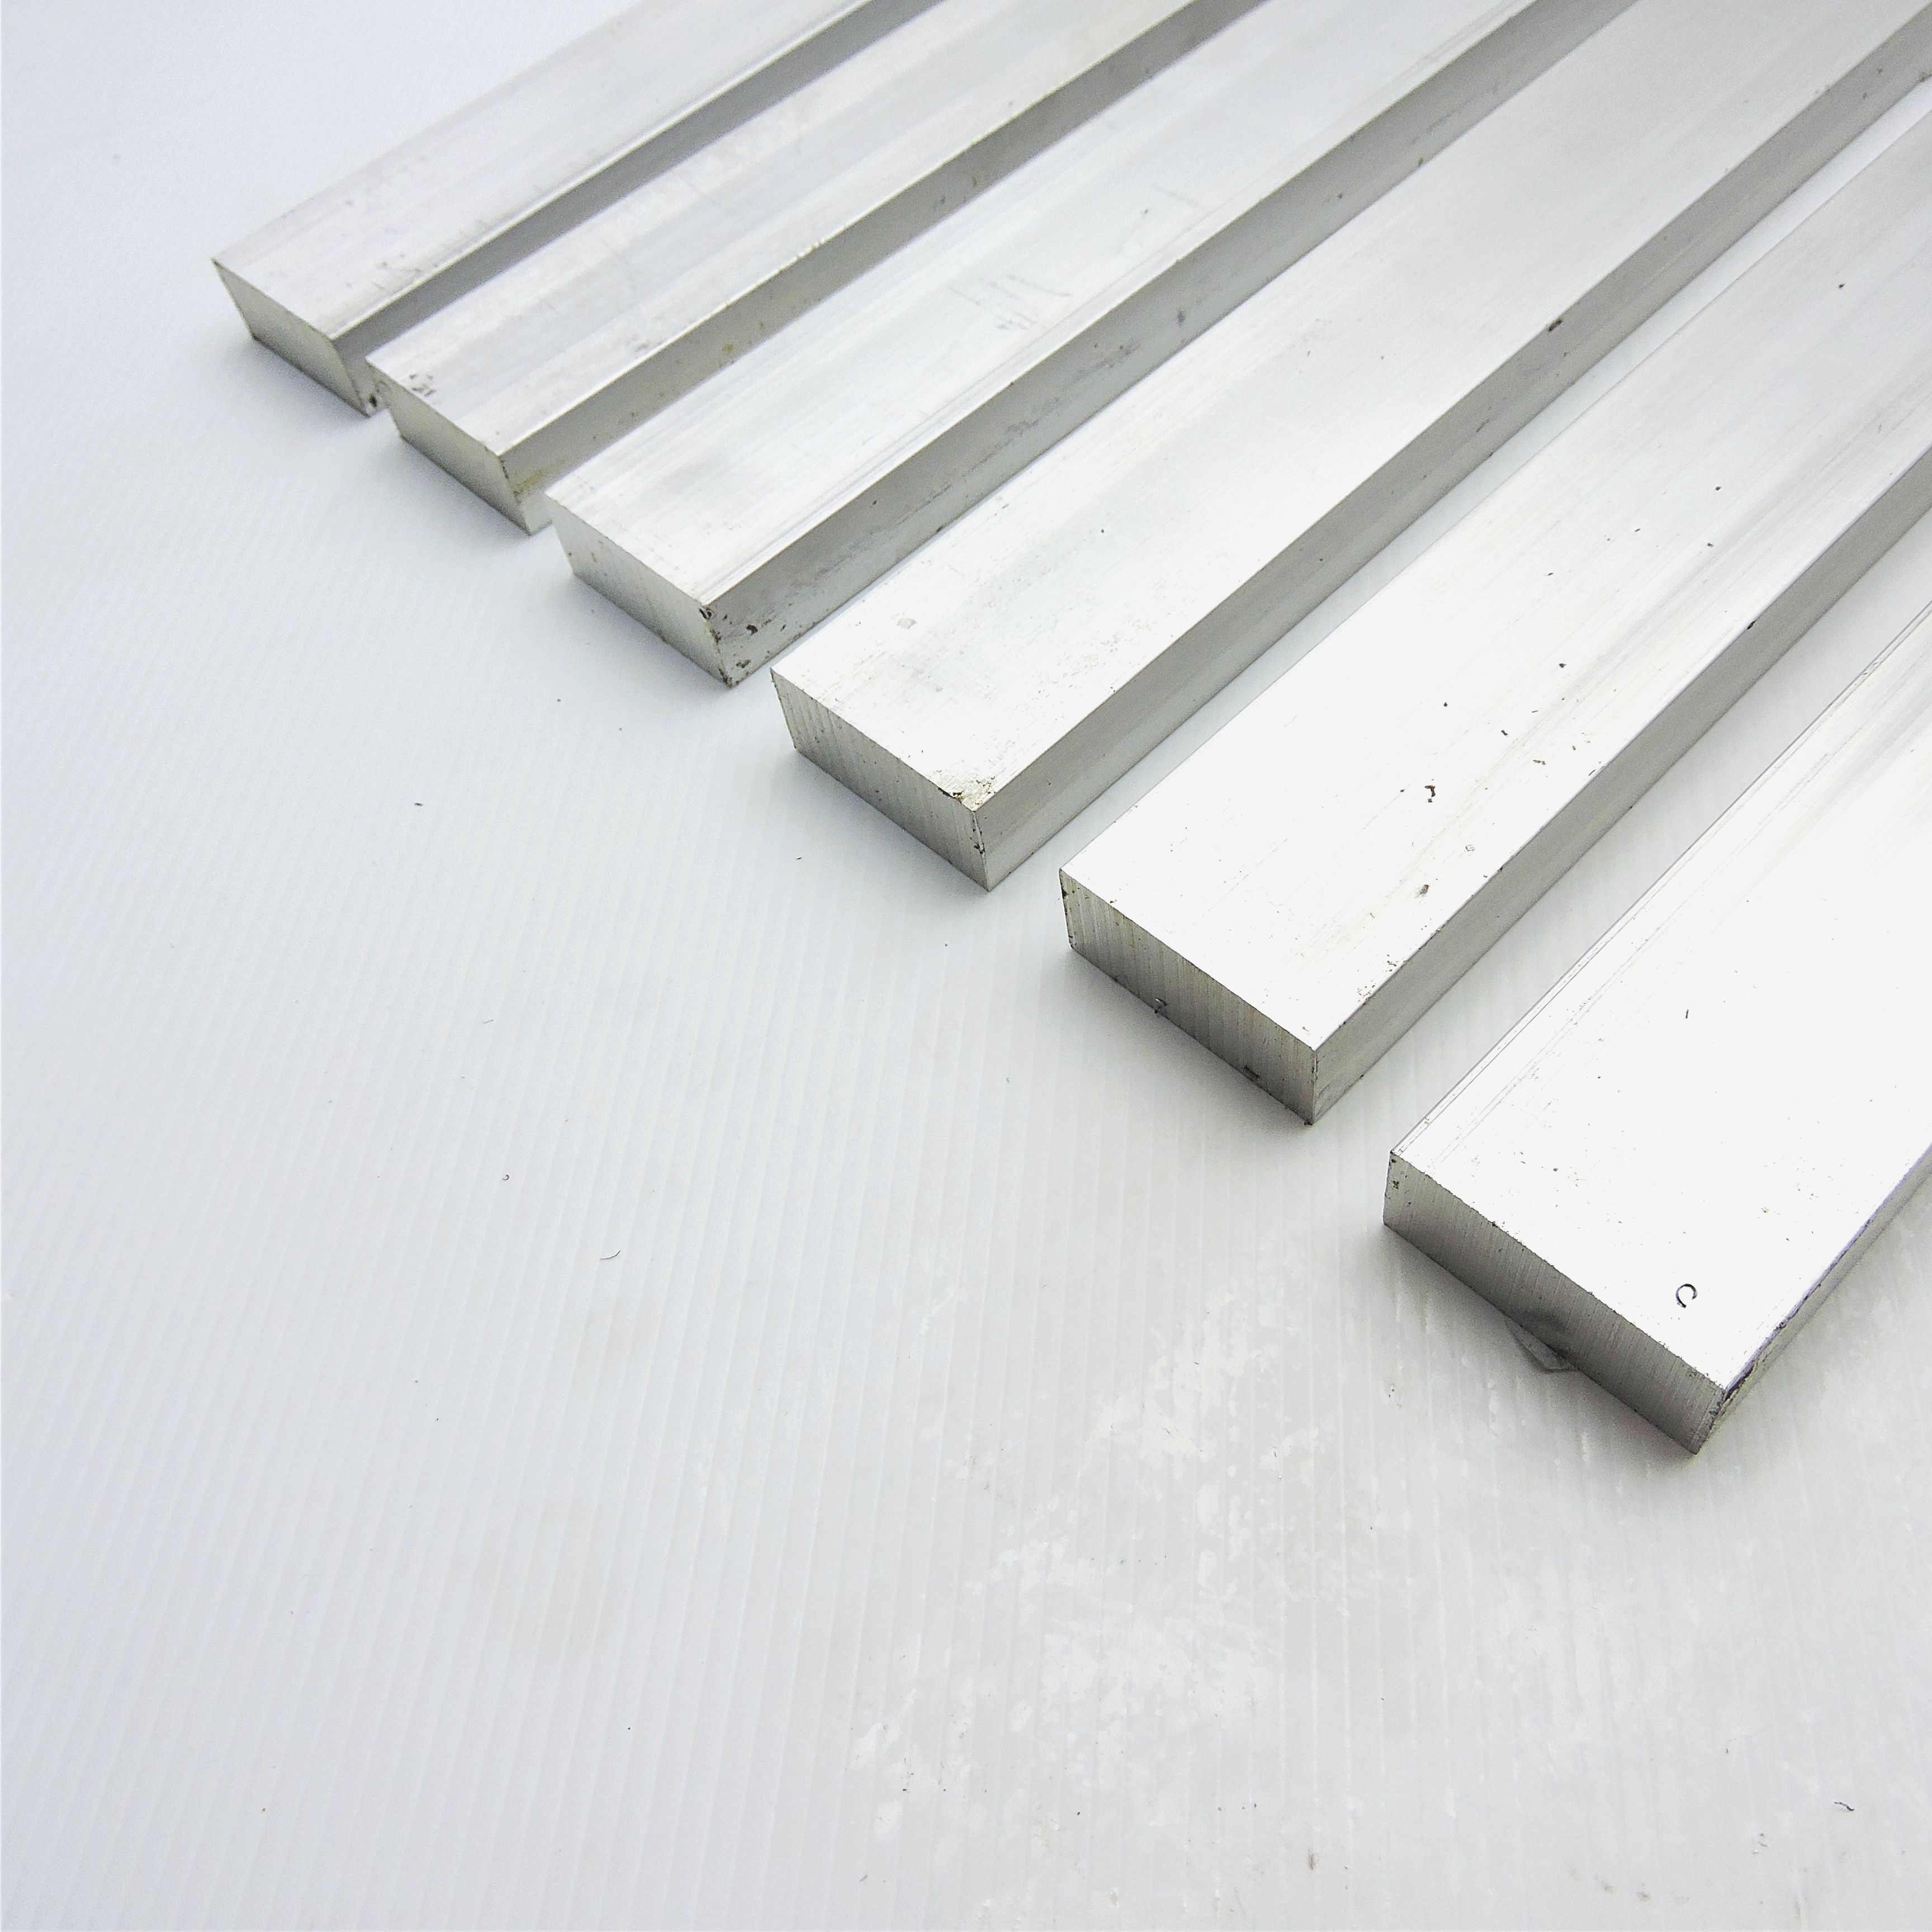 """4 Pieces 2/"""" X 2/"""" ALUMINUM SQUARE 6061 BAR 4.5/"""" long T6511 SOLID New Mill Stock"""